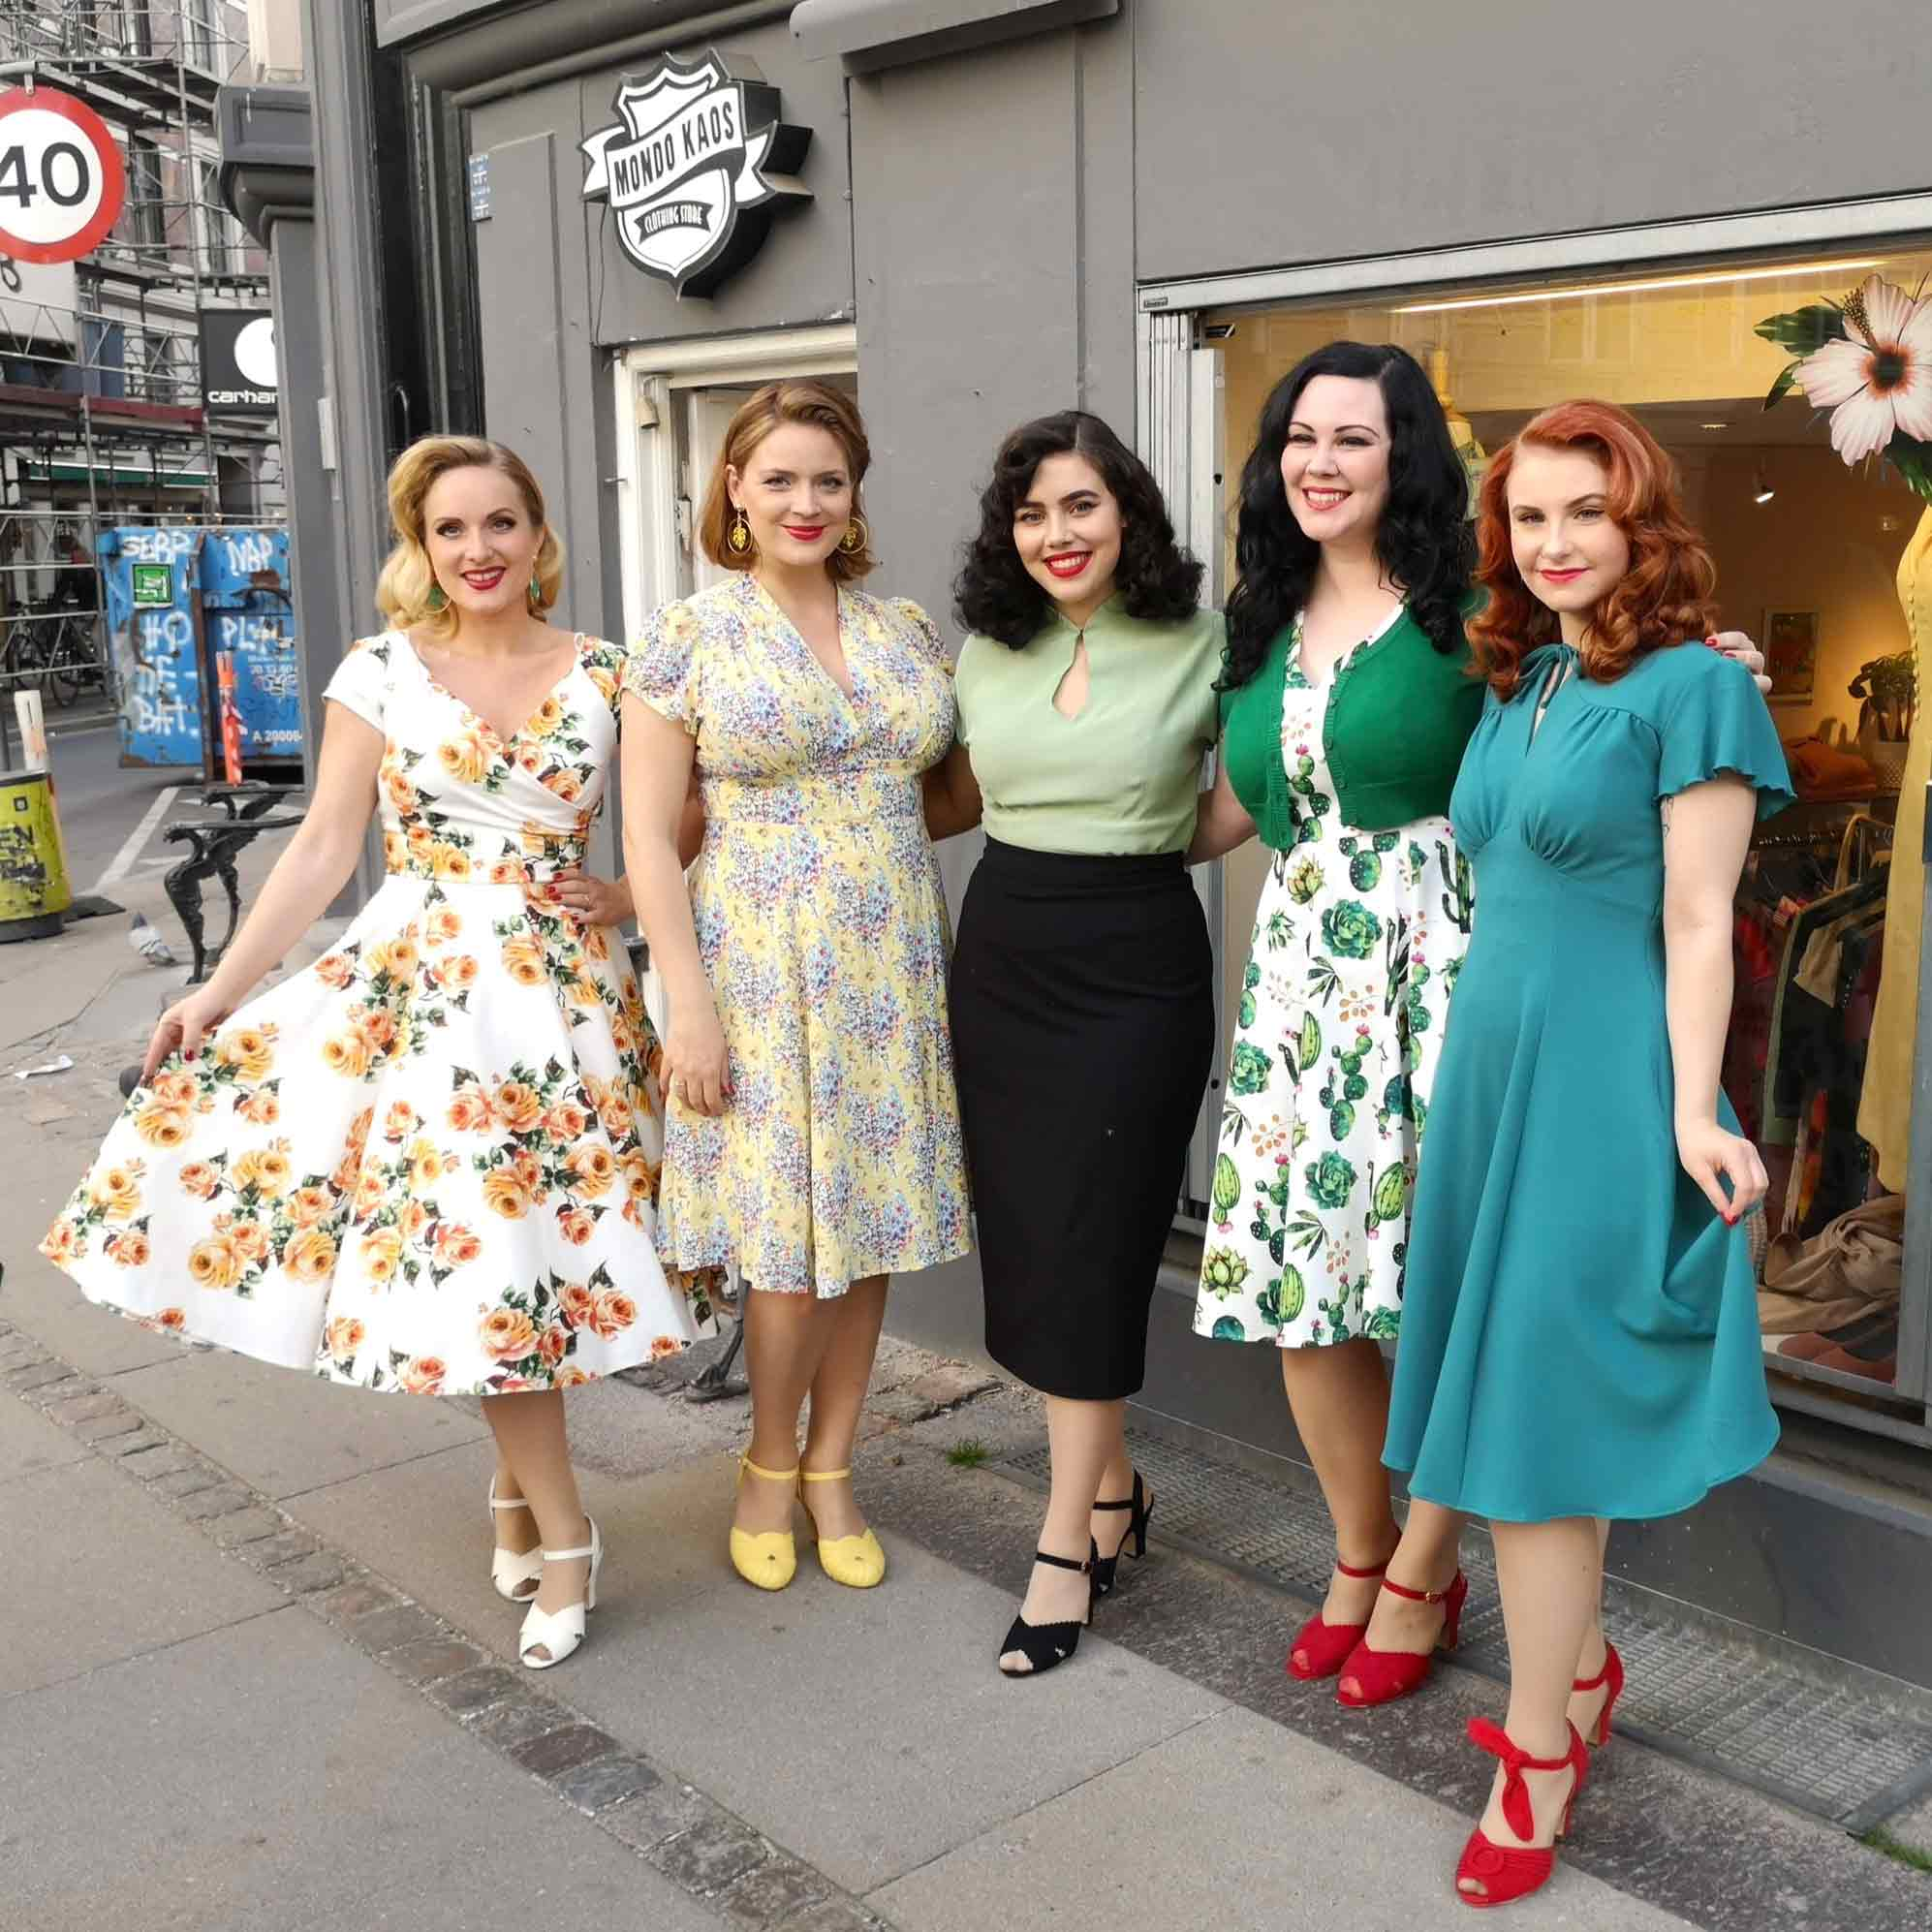 The models for our Retro Fashion Show are ready in beautiful summer dresses